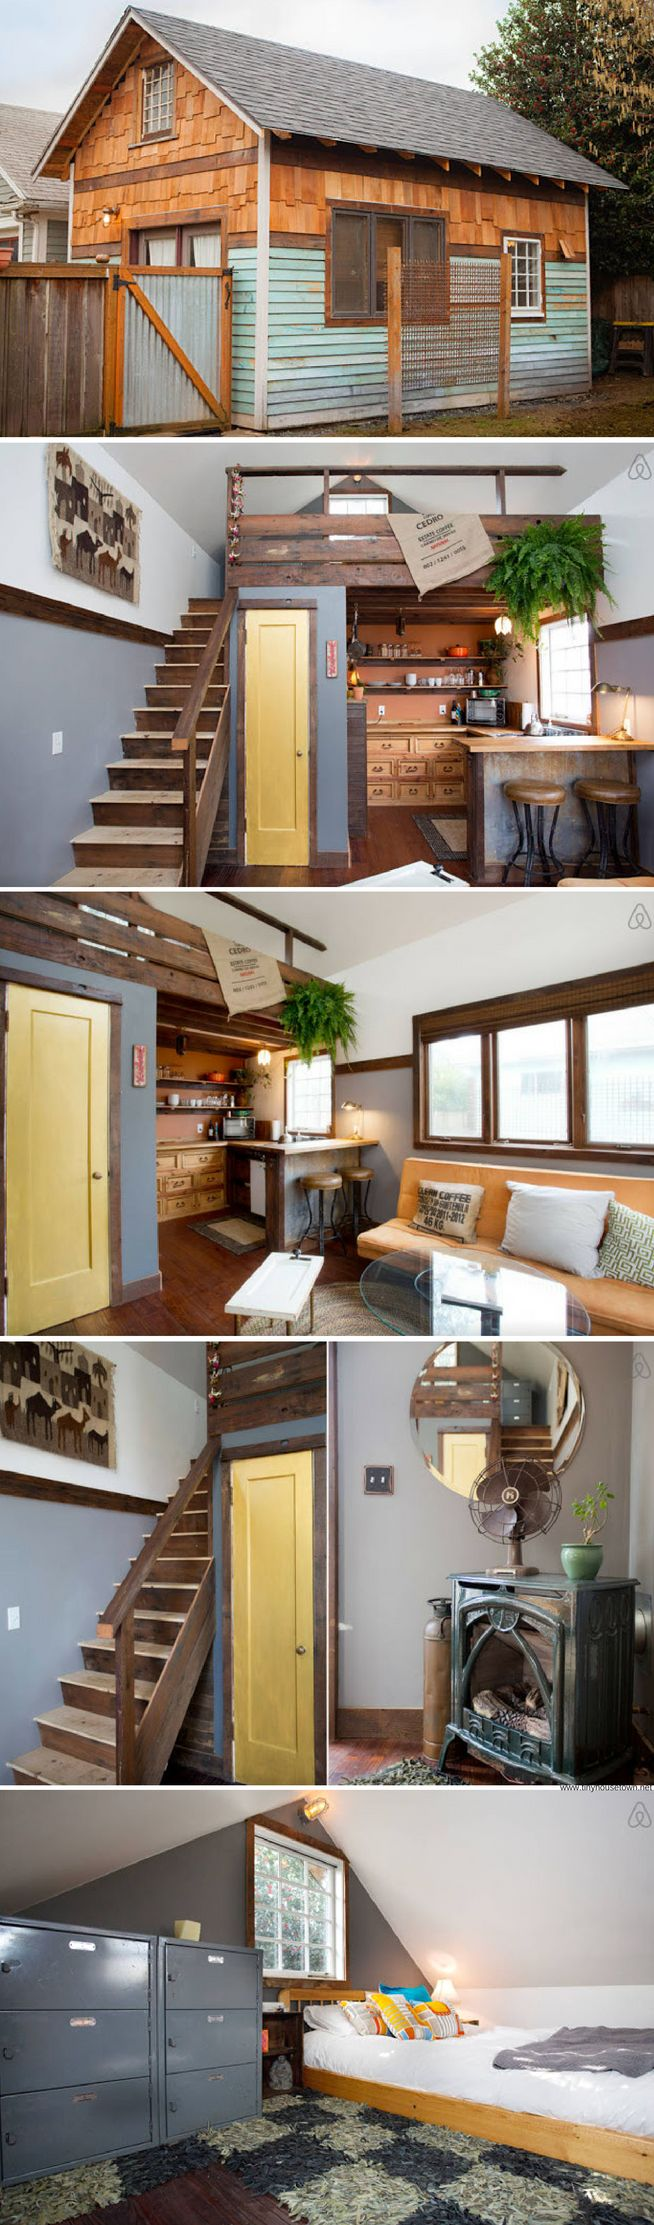 A rustic modern tiny house available for rent on Airbnb in Oregon